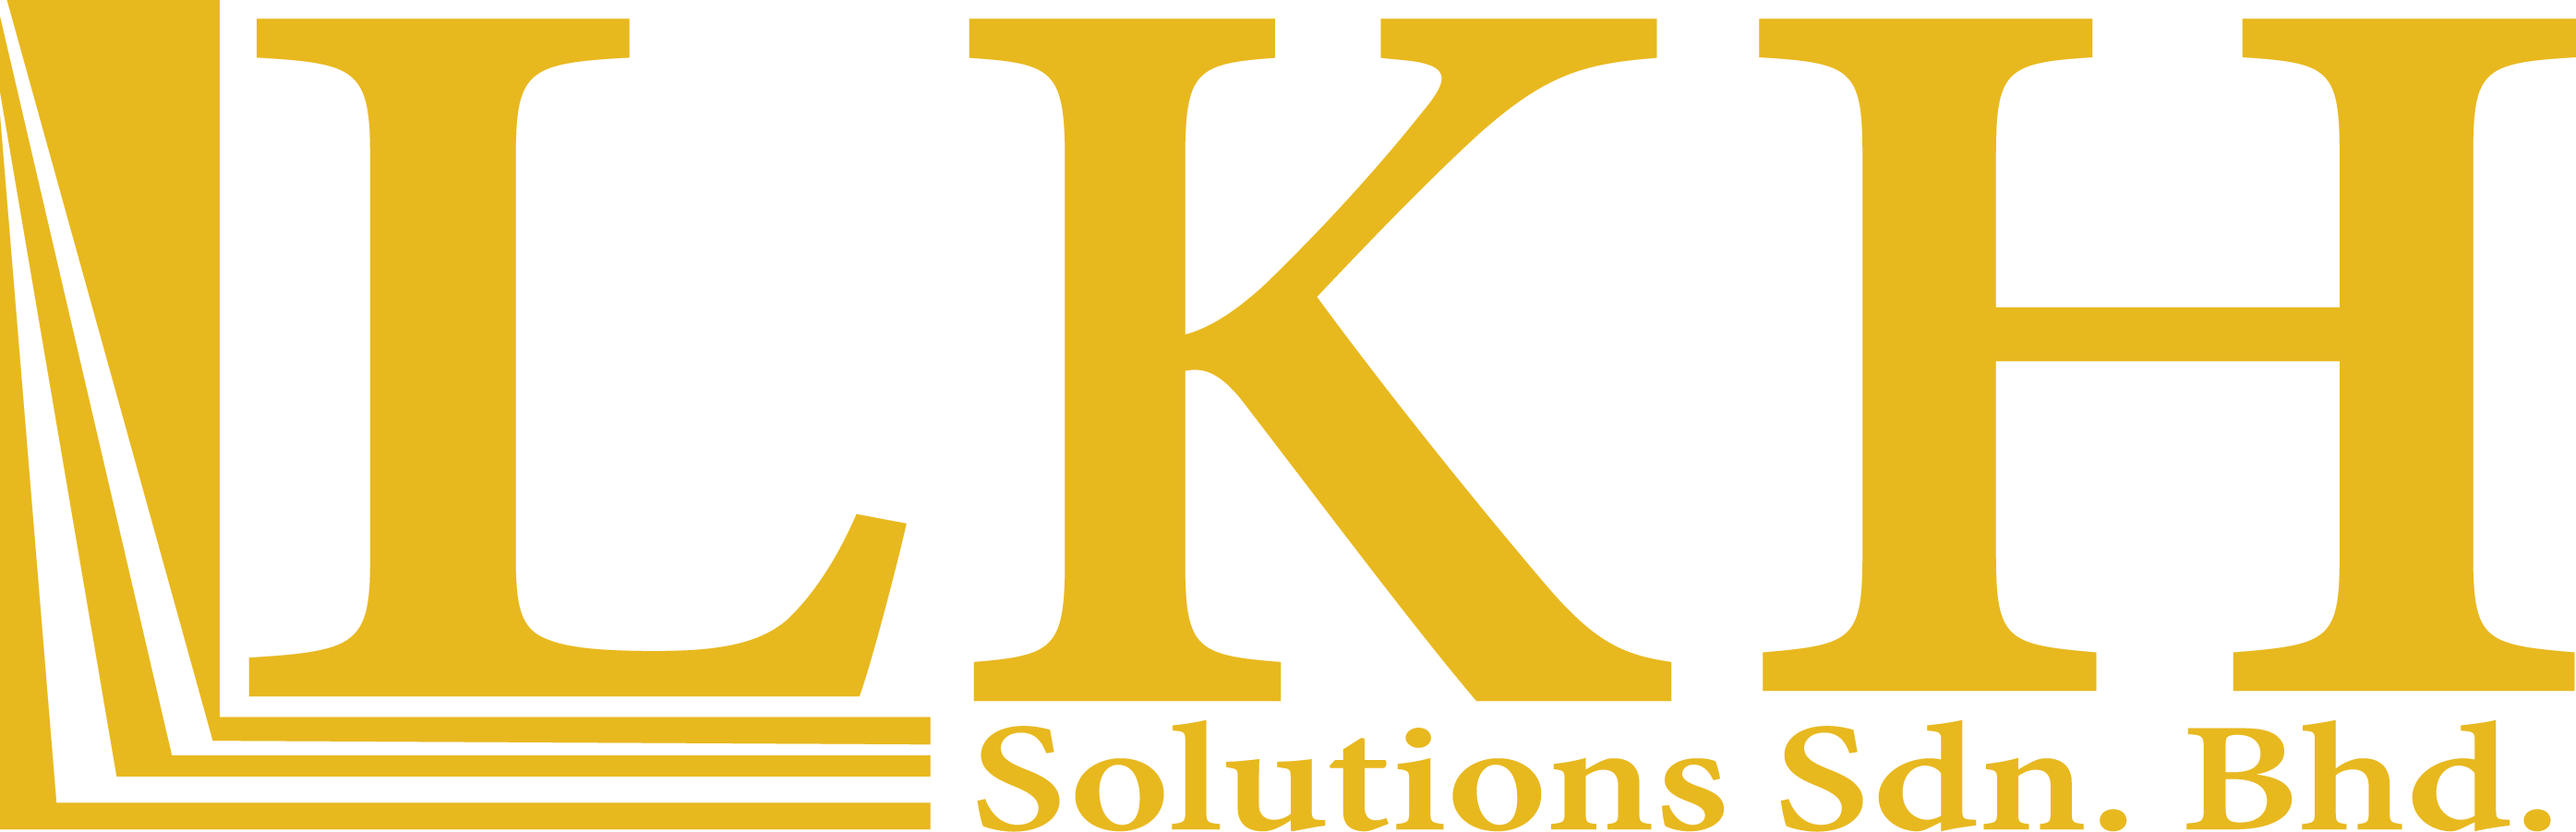 LKH Solutions